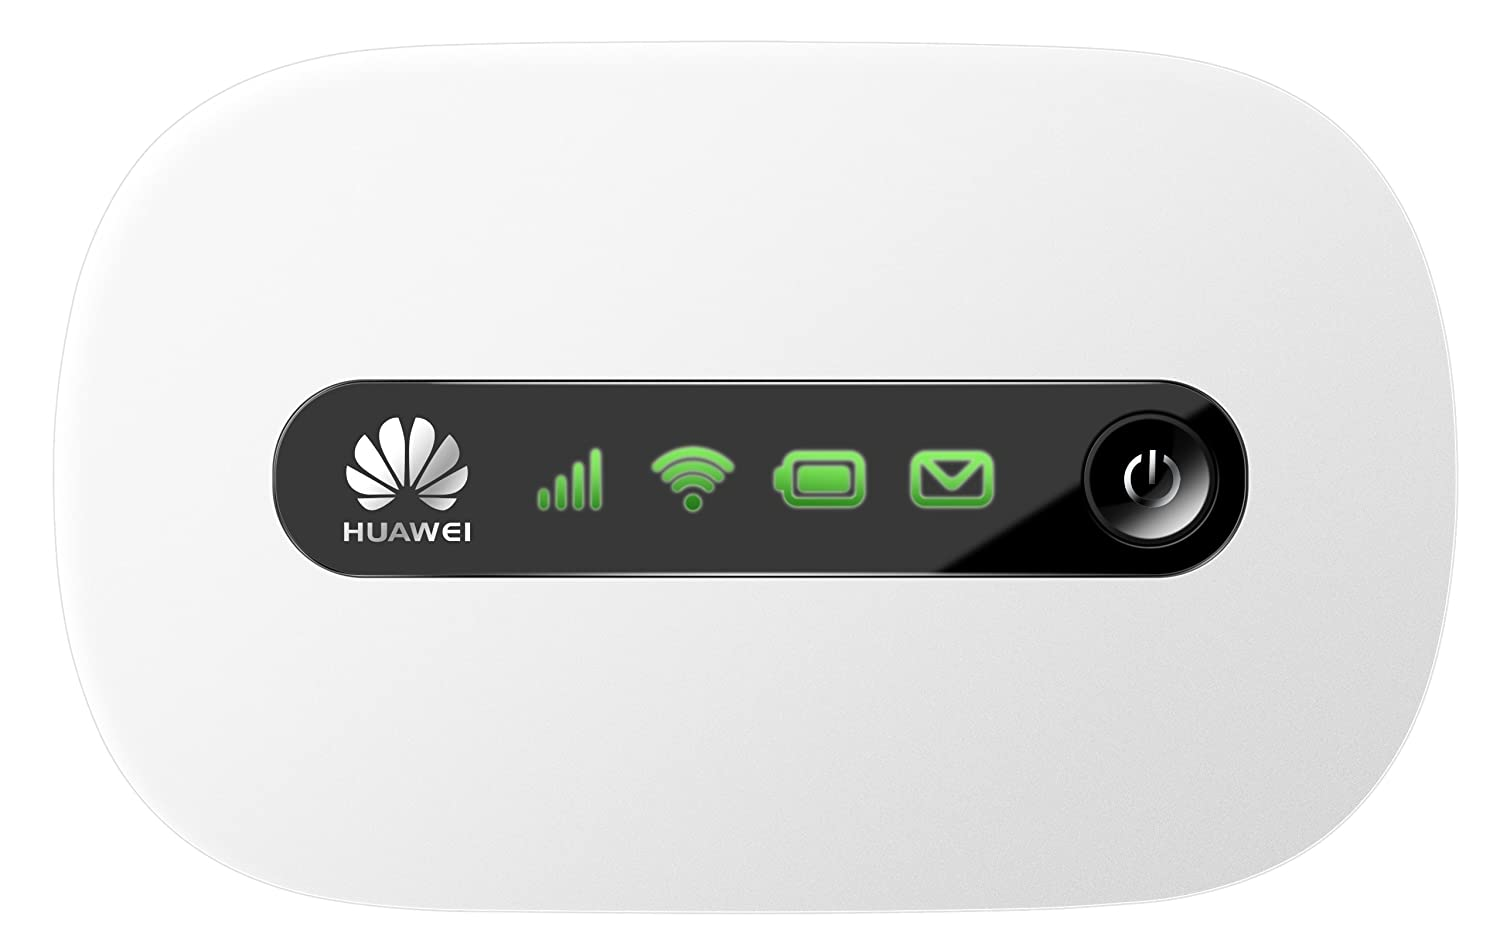 Huawei E5220s-2 21 Mbps 3G Mobile WiFi Hotspot (3G in Europe, Asia, Middle East, Africa) (white)